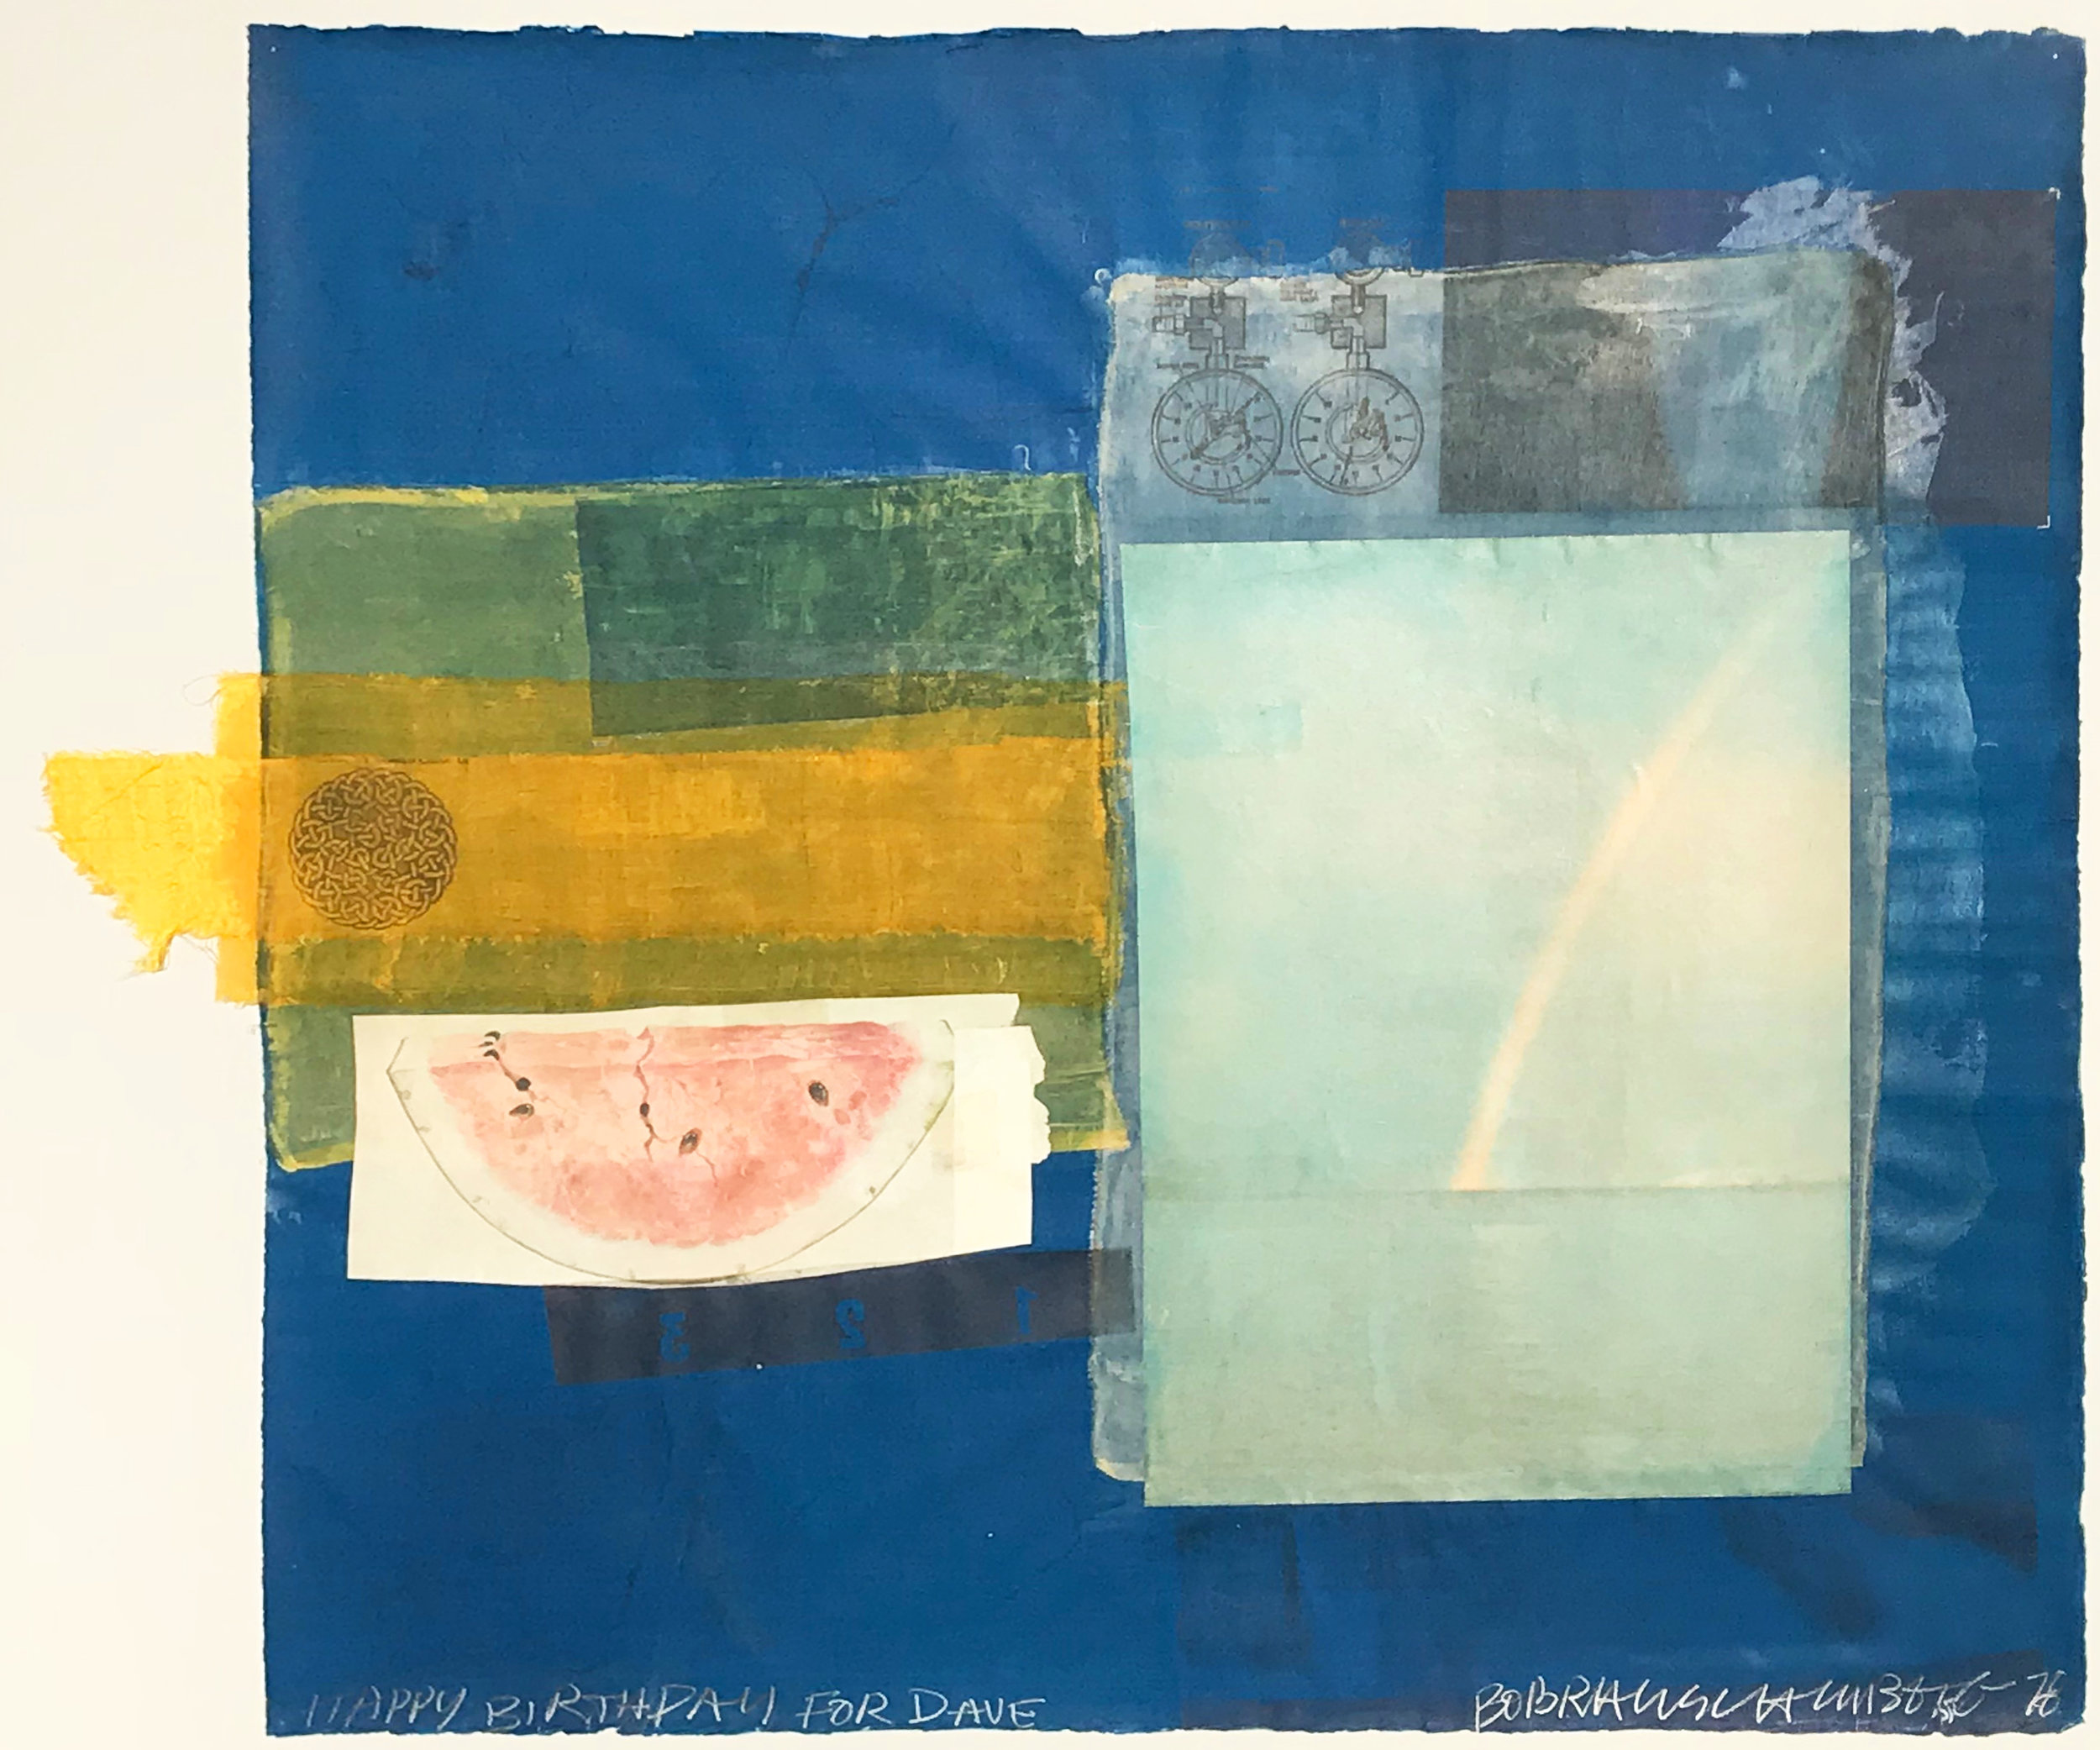 Robert Rauschenberg. Untitled (Happy Birthday for Dave), 1978. 78.D049.